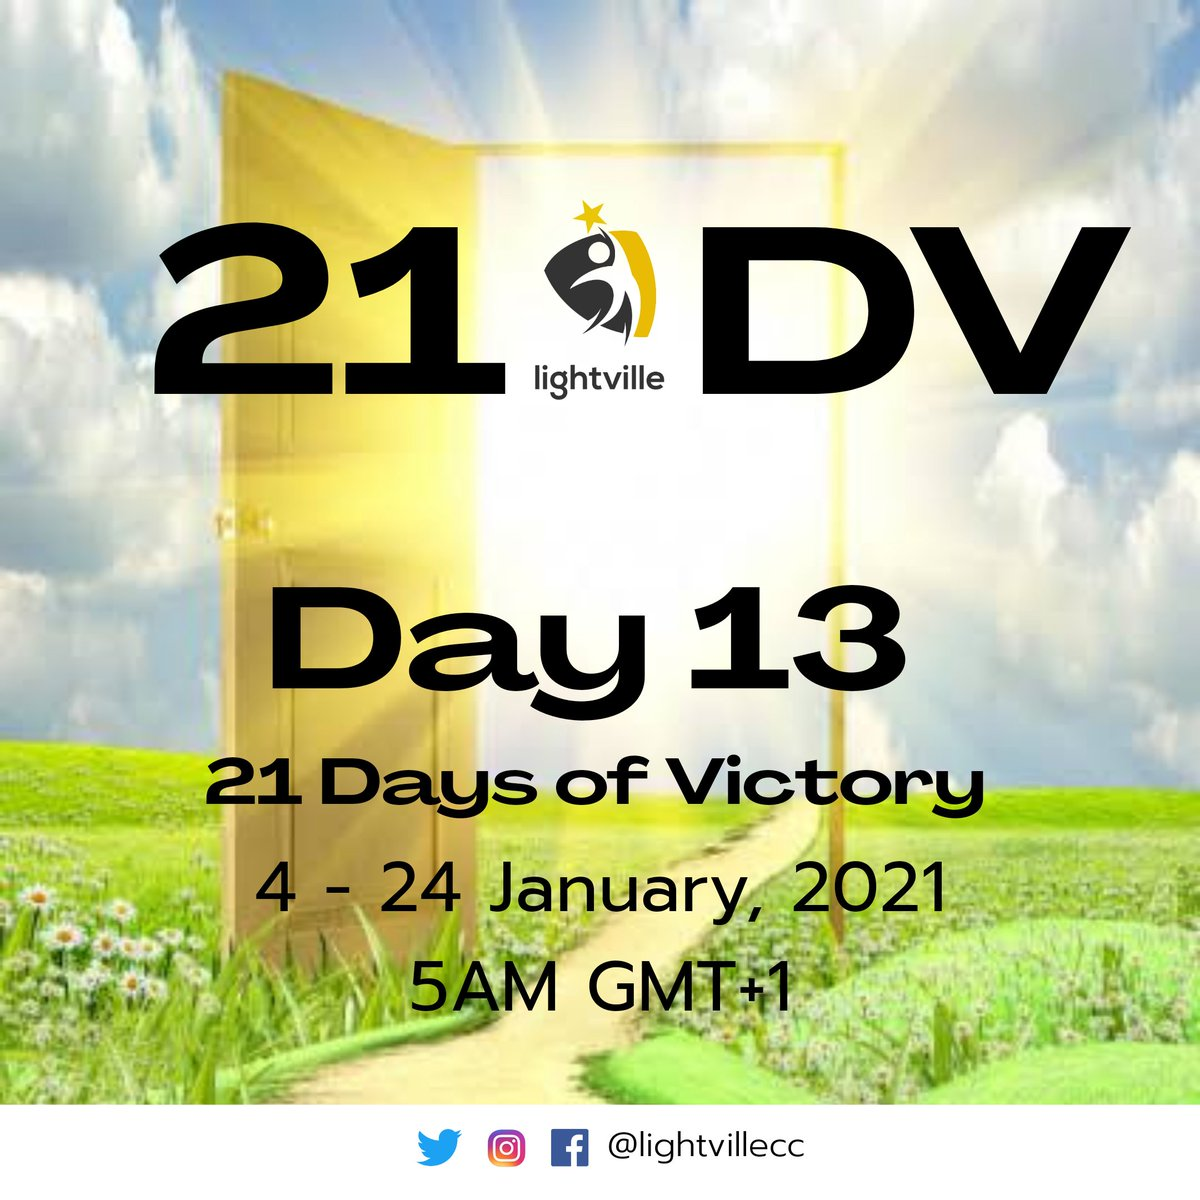 We're excited it's Day 13 of 21 Days of Victory.  #Day13 #21DV2021 #21DaysOfVictory #Lightville